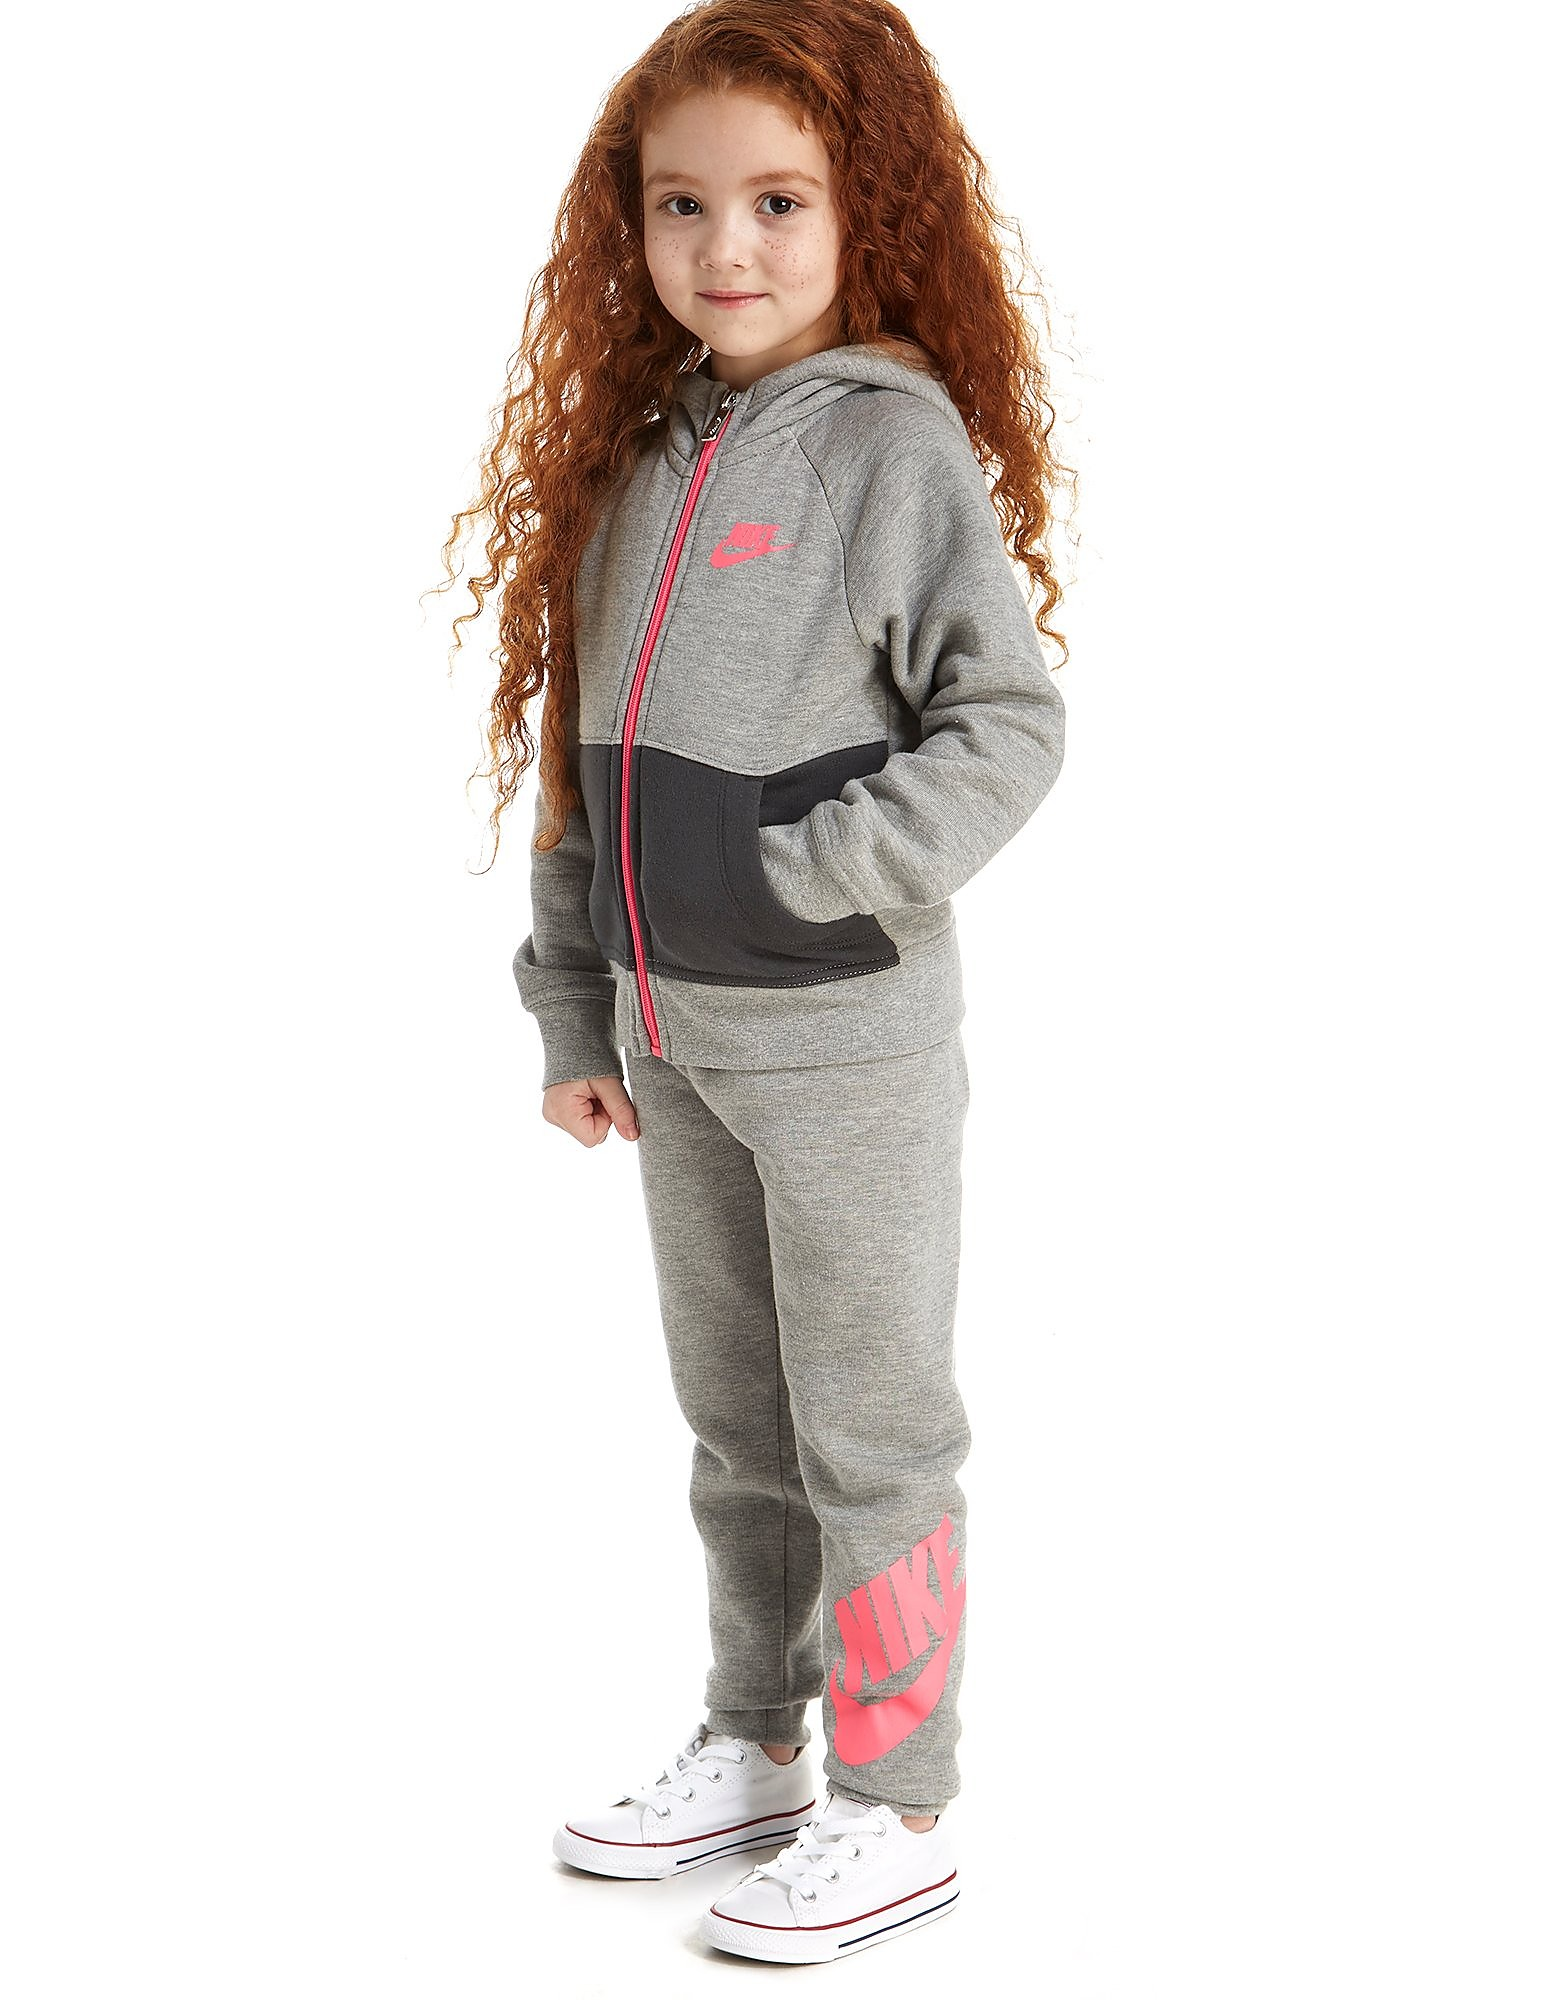 Nike Girls' Futura Suit Children